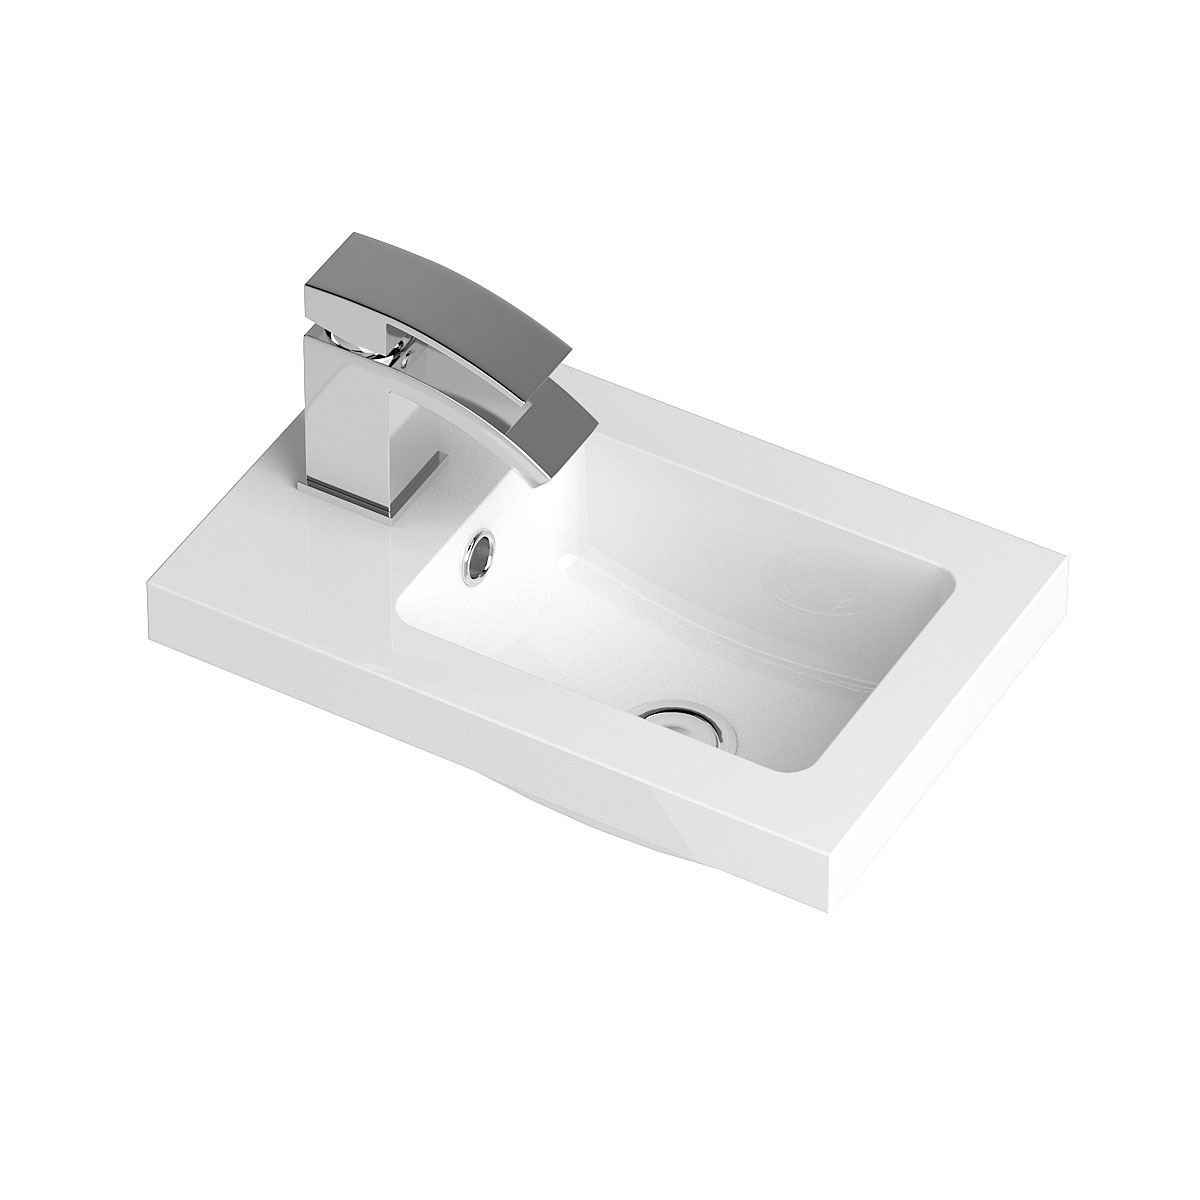 Hudson Reed Apollo Compact Floor Standing Vanity Unit and Basin 405mm Wide Gloss Grey 1 Tap Hole